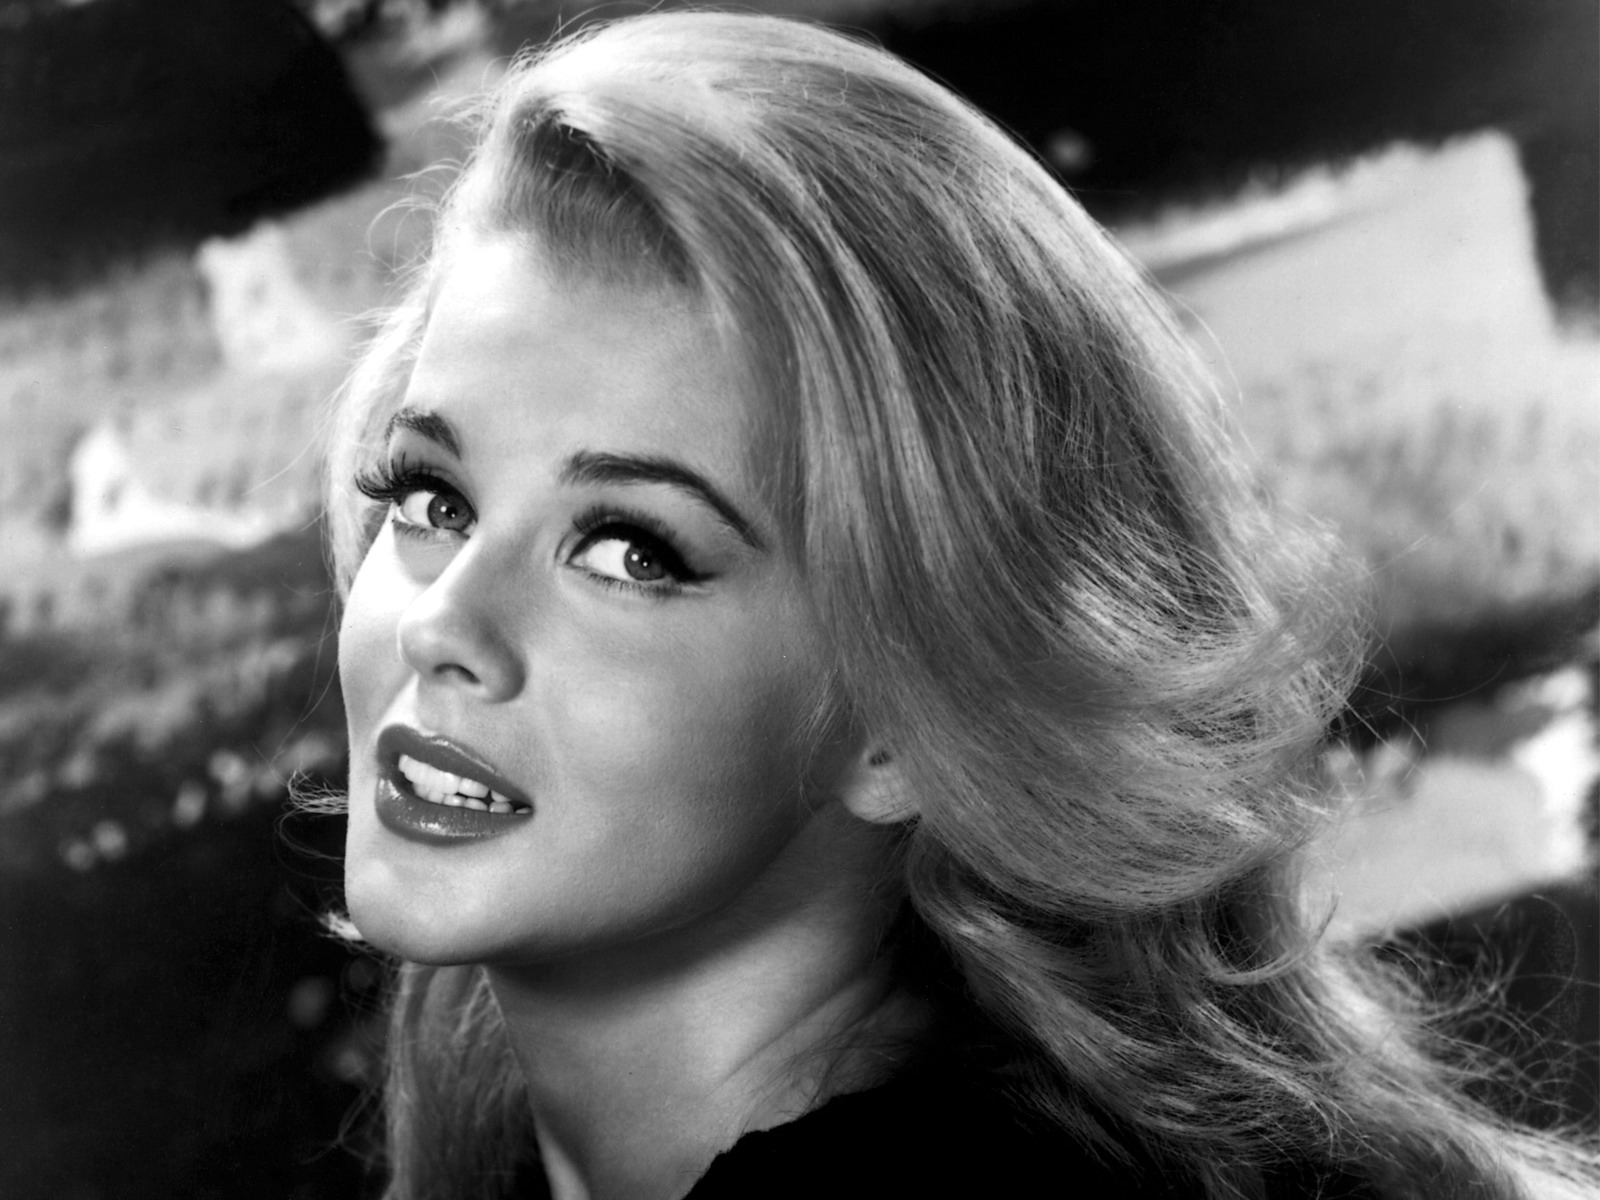 Ann-Margret AnnMargret photo gallery 37 high quality pics of Ann